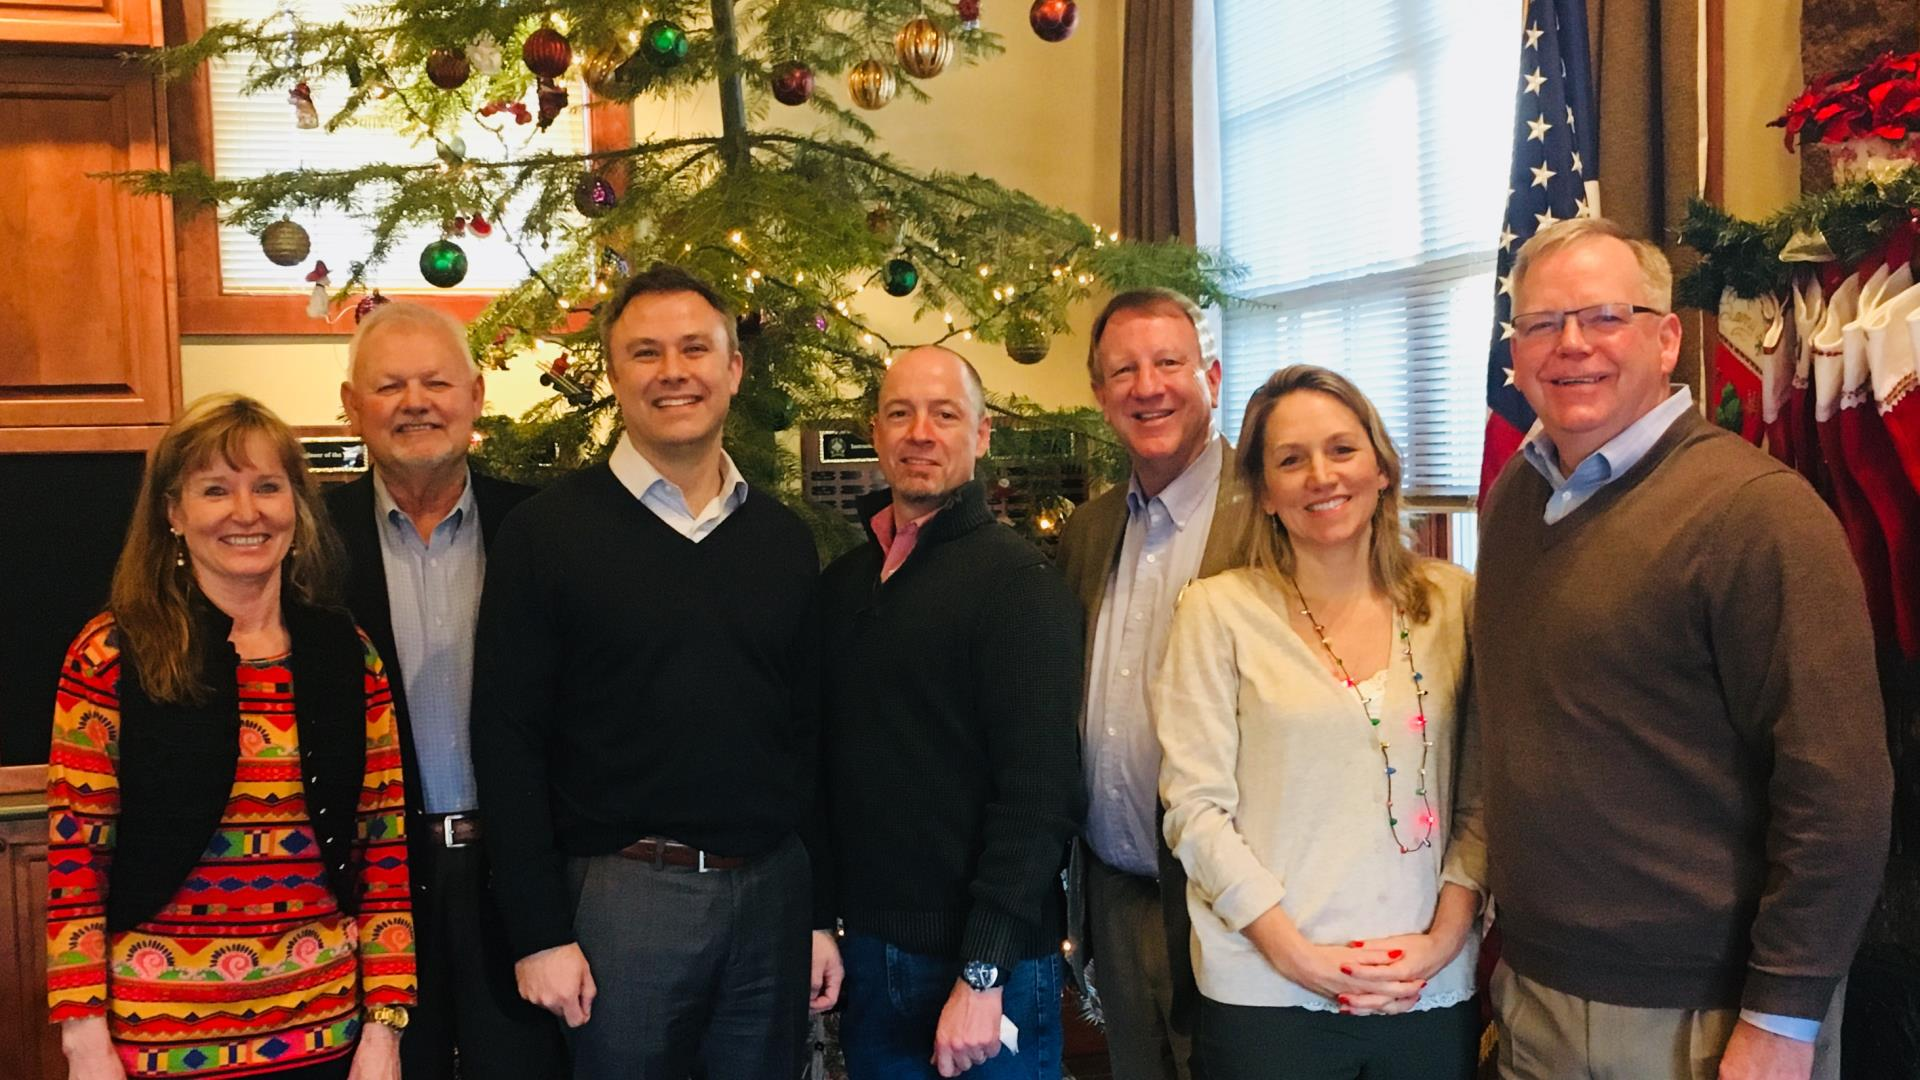 Eric King and the executive team standing in front of a Christmas tree. Merry Christmas!